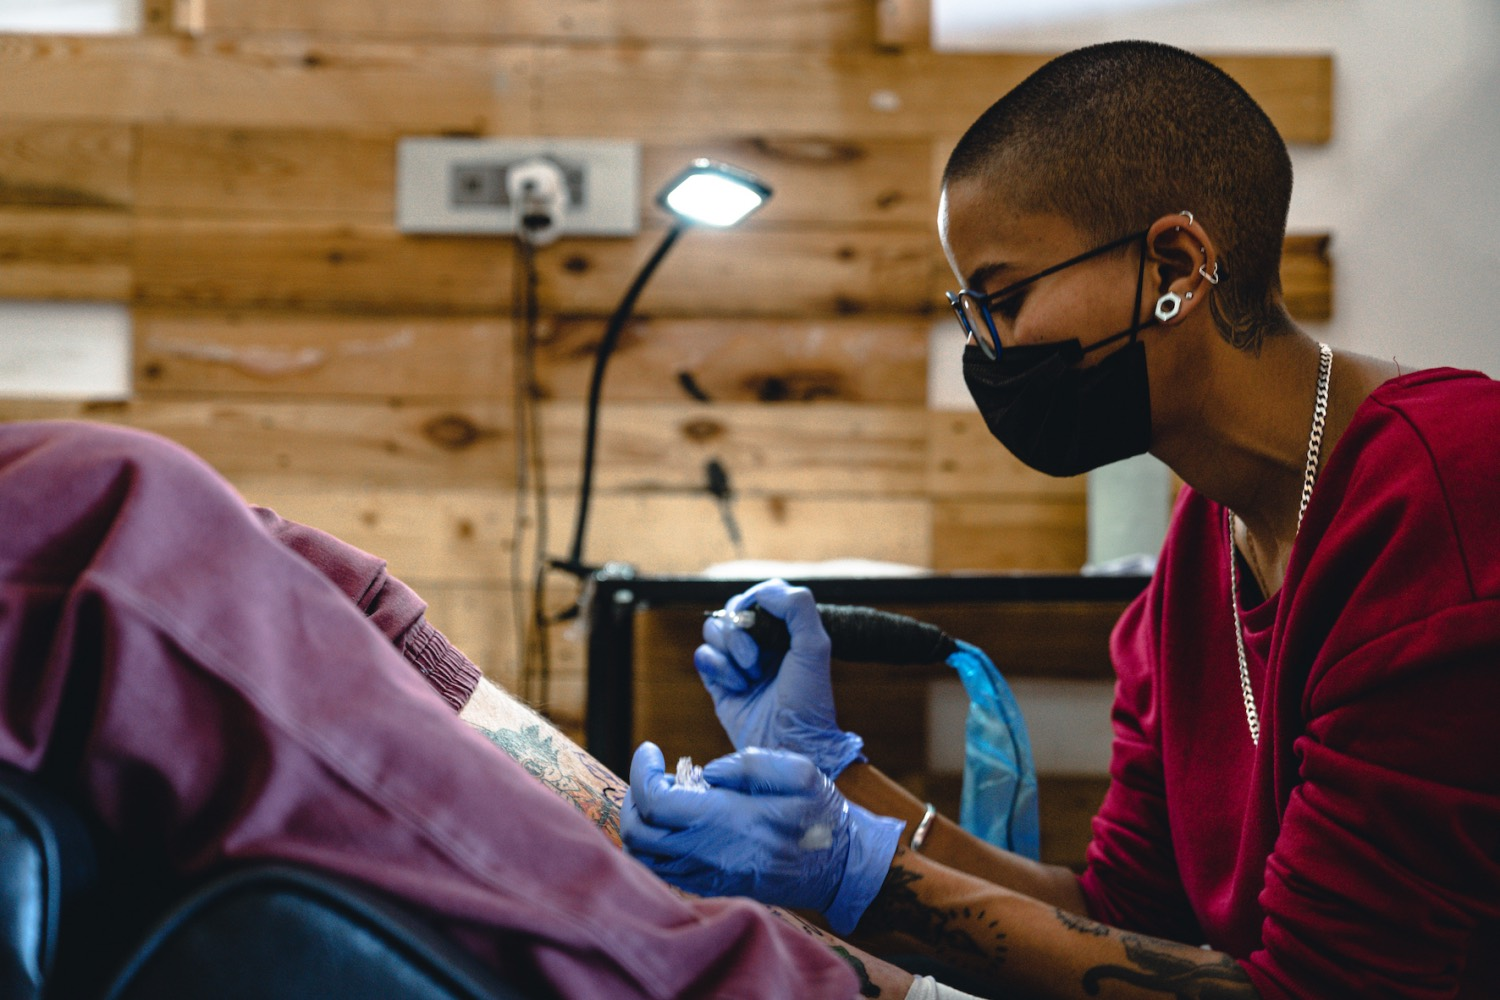 Siobhon Tsczar Naidoo tattooing a client out of The Tattoo gallery